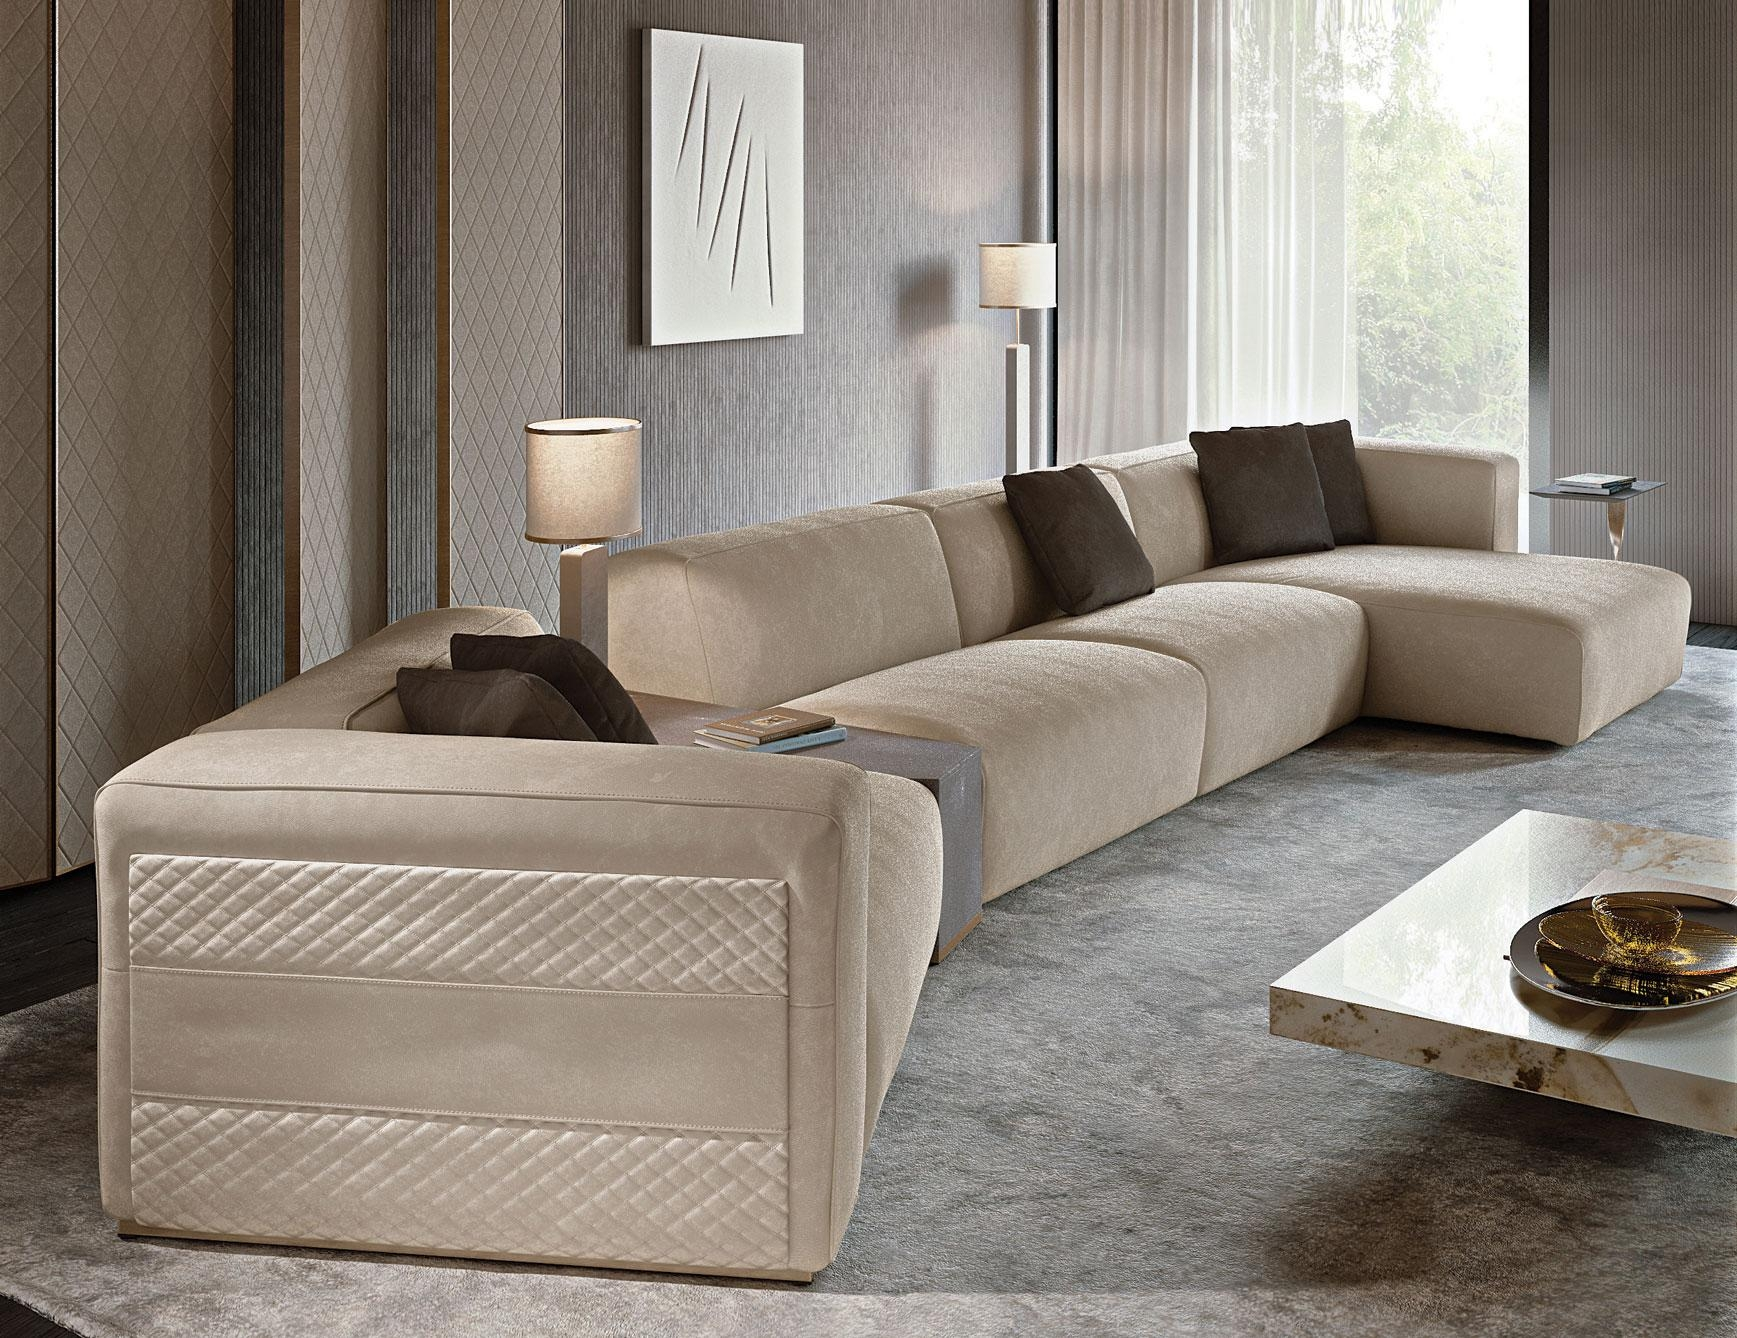 Contemporary Sofas And Chairs Buying Guide Leather Intended Decor Regarding Sofas And Chairs (View 11 of 20)